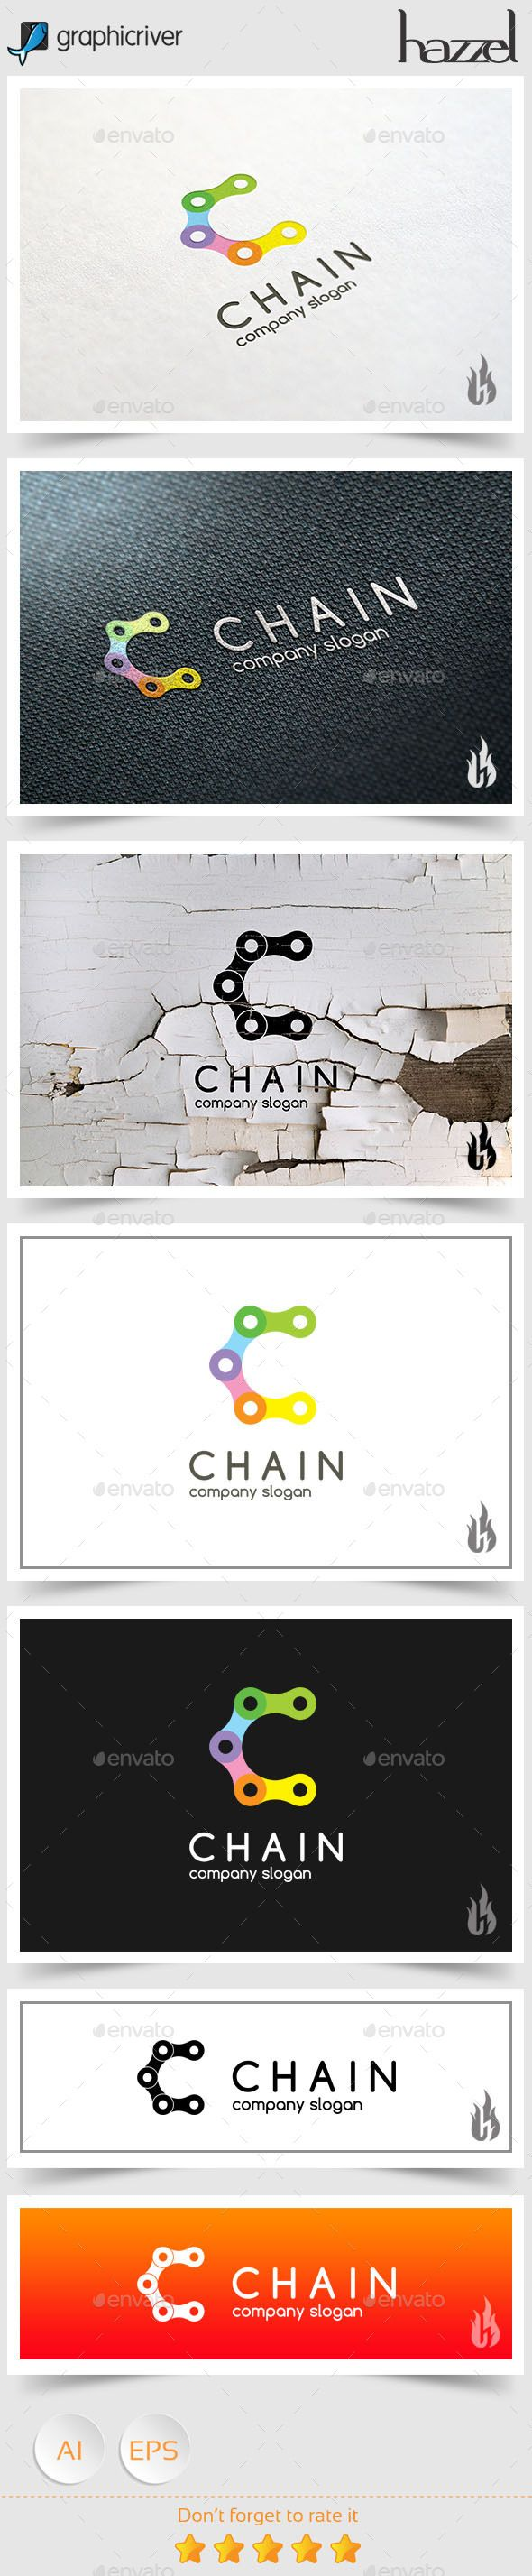 Chain Letter C - Logo Design Template Vector #logotype Download it here: http://graphicriver.net/item/chain-letter-c-logo/9088413?s_rank=570?ref=nesto